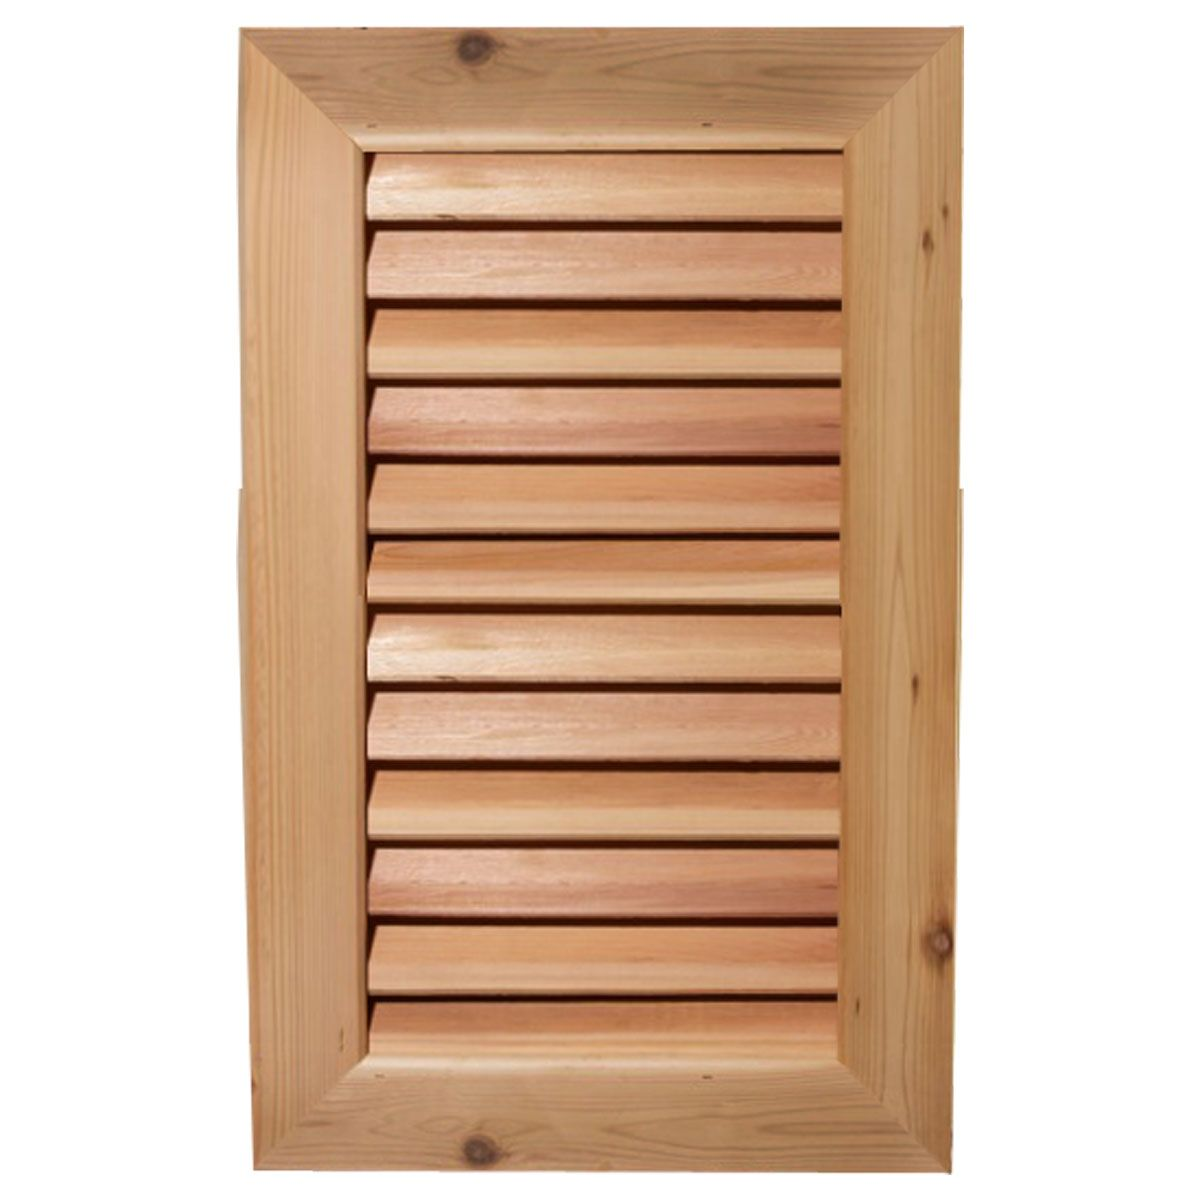 Vertical Wood Gable Vent Gable Vents Brick Molding Wood